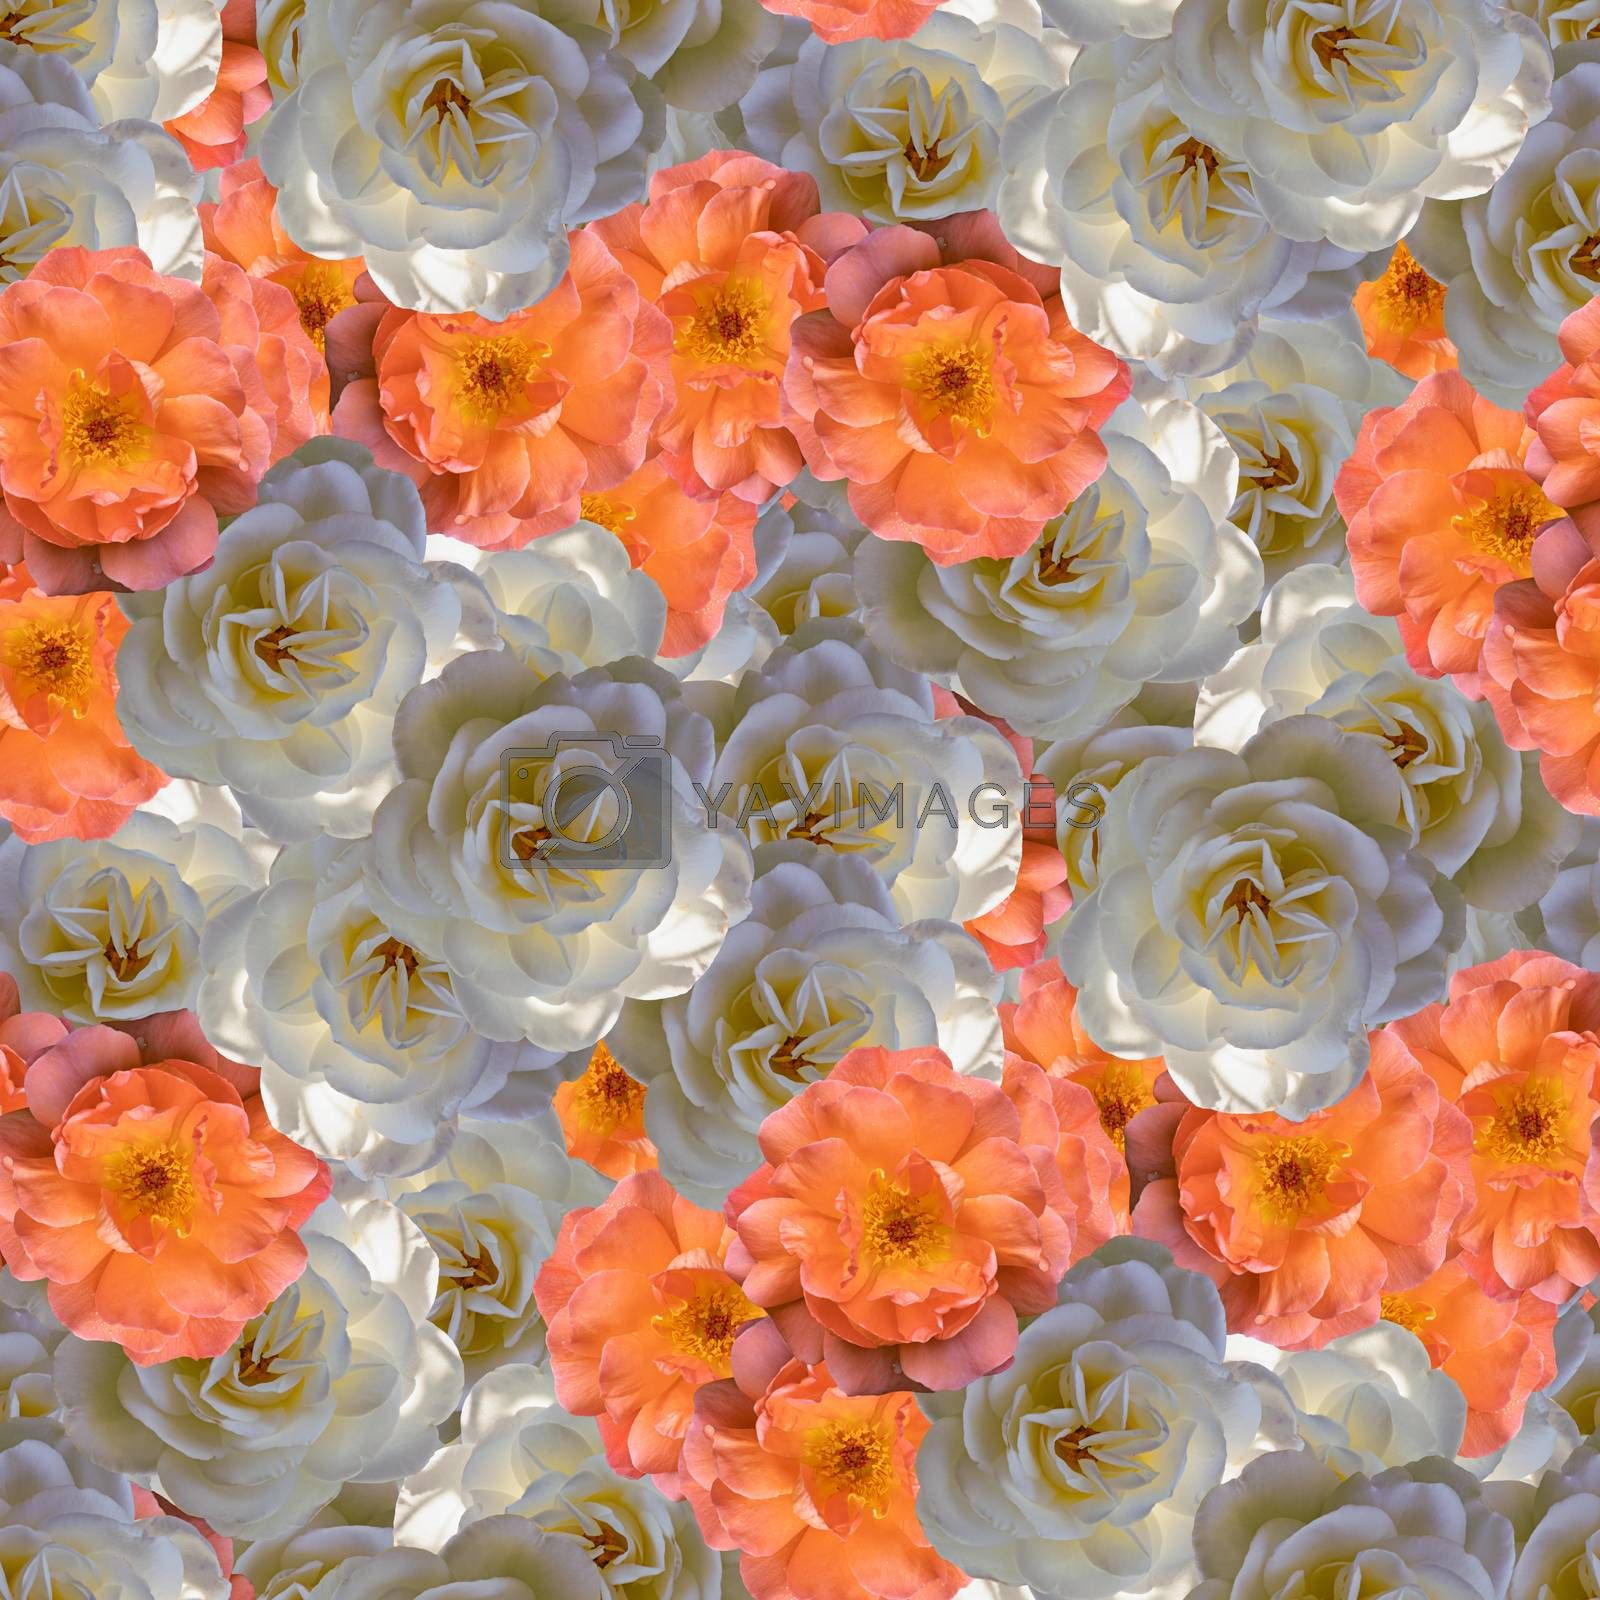 seamless light floral pattern, print design element for fabrics or packaging